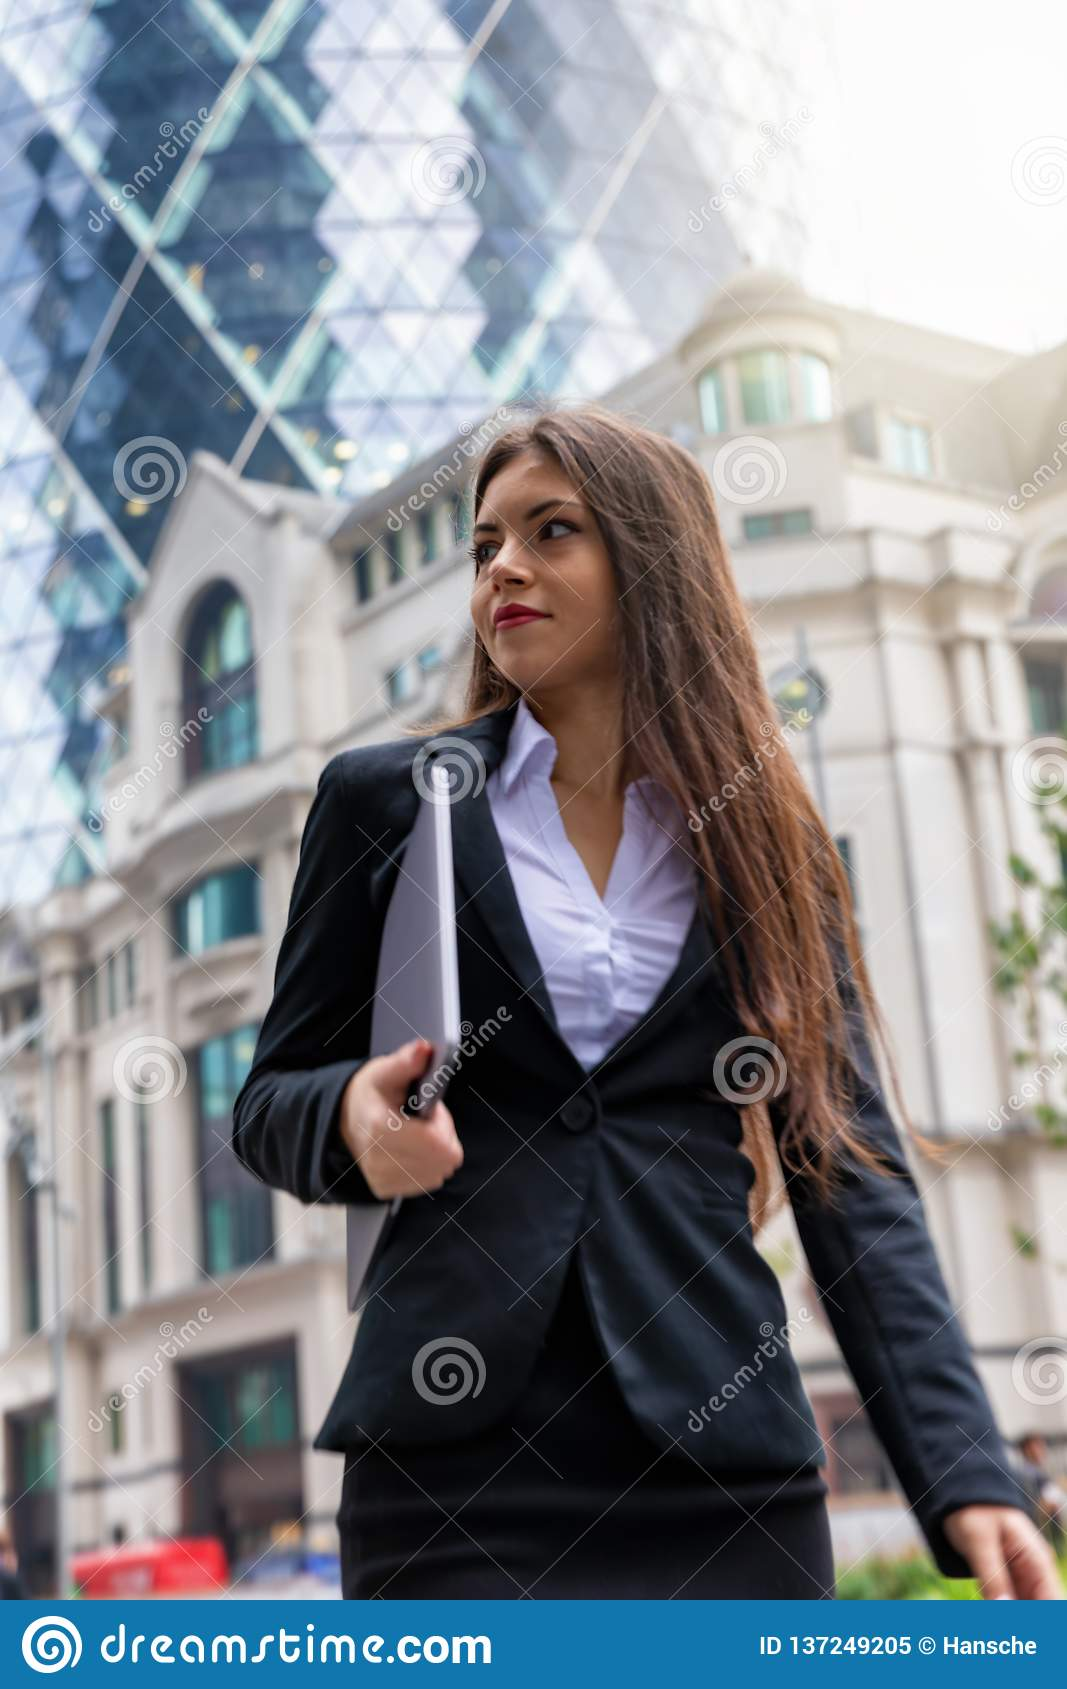 Confident businesswoman in corporate outfit walks outdoors in financial district